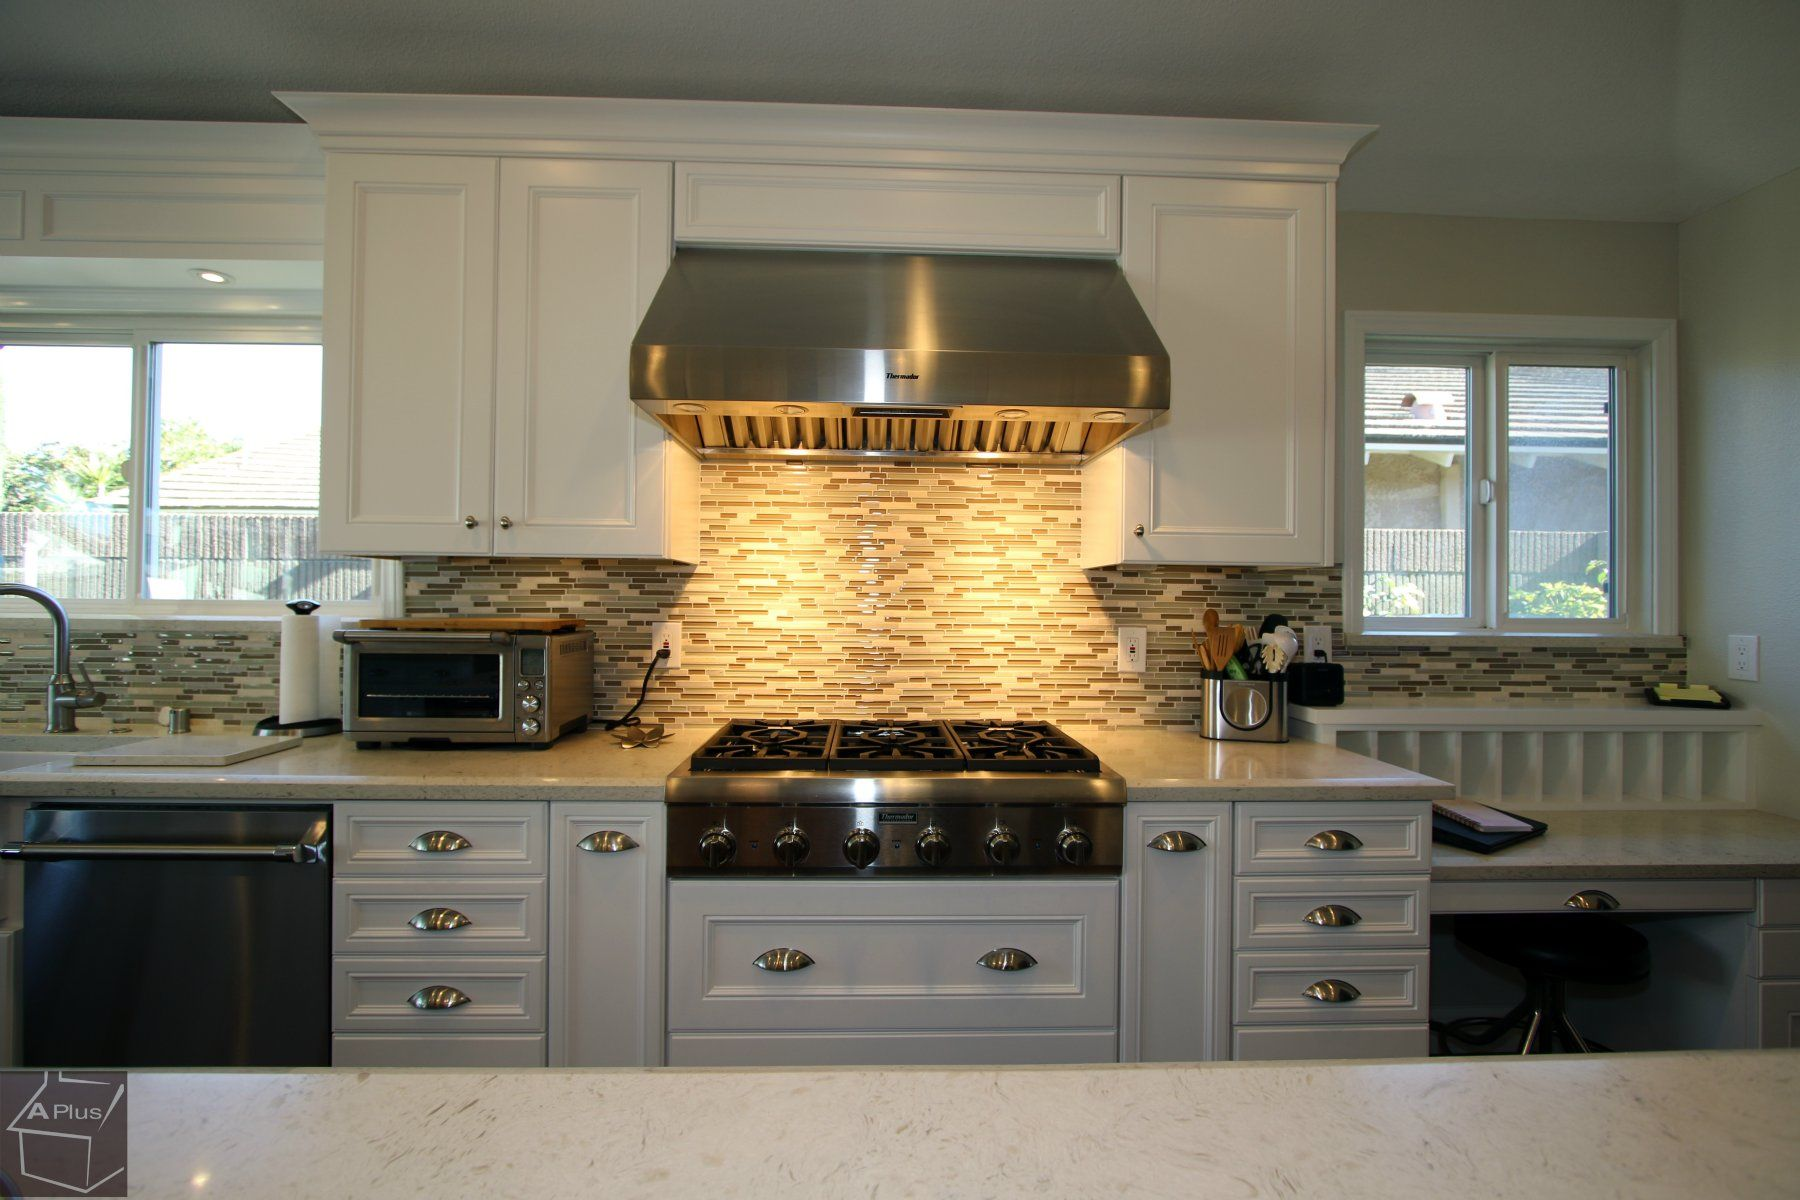 Pin By Aplus Interior Design And Remodeling On 113 Fountain